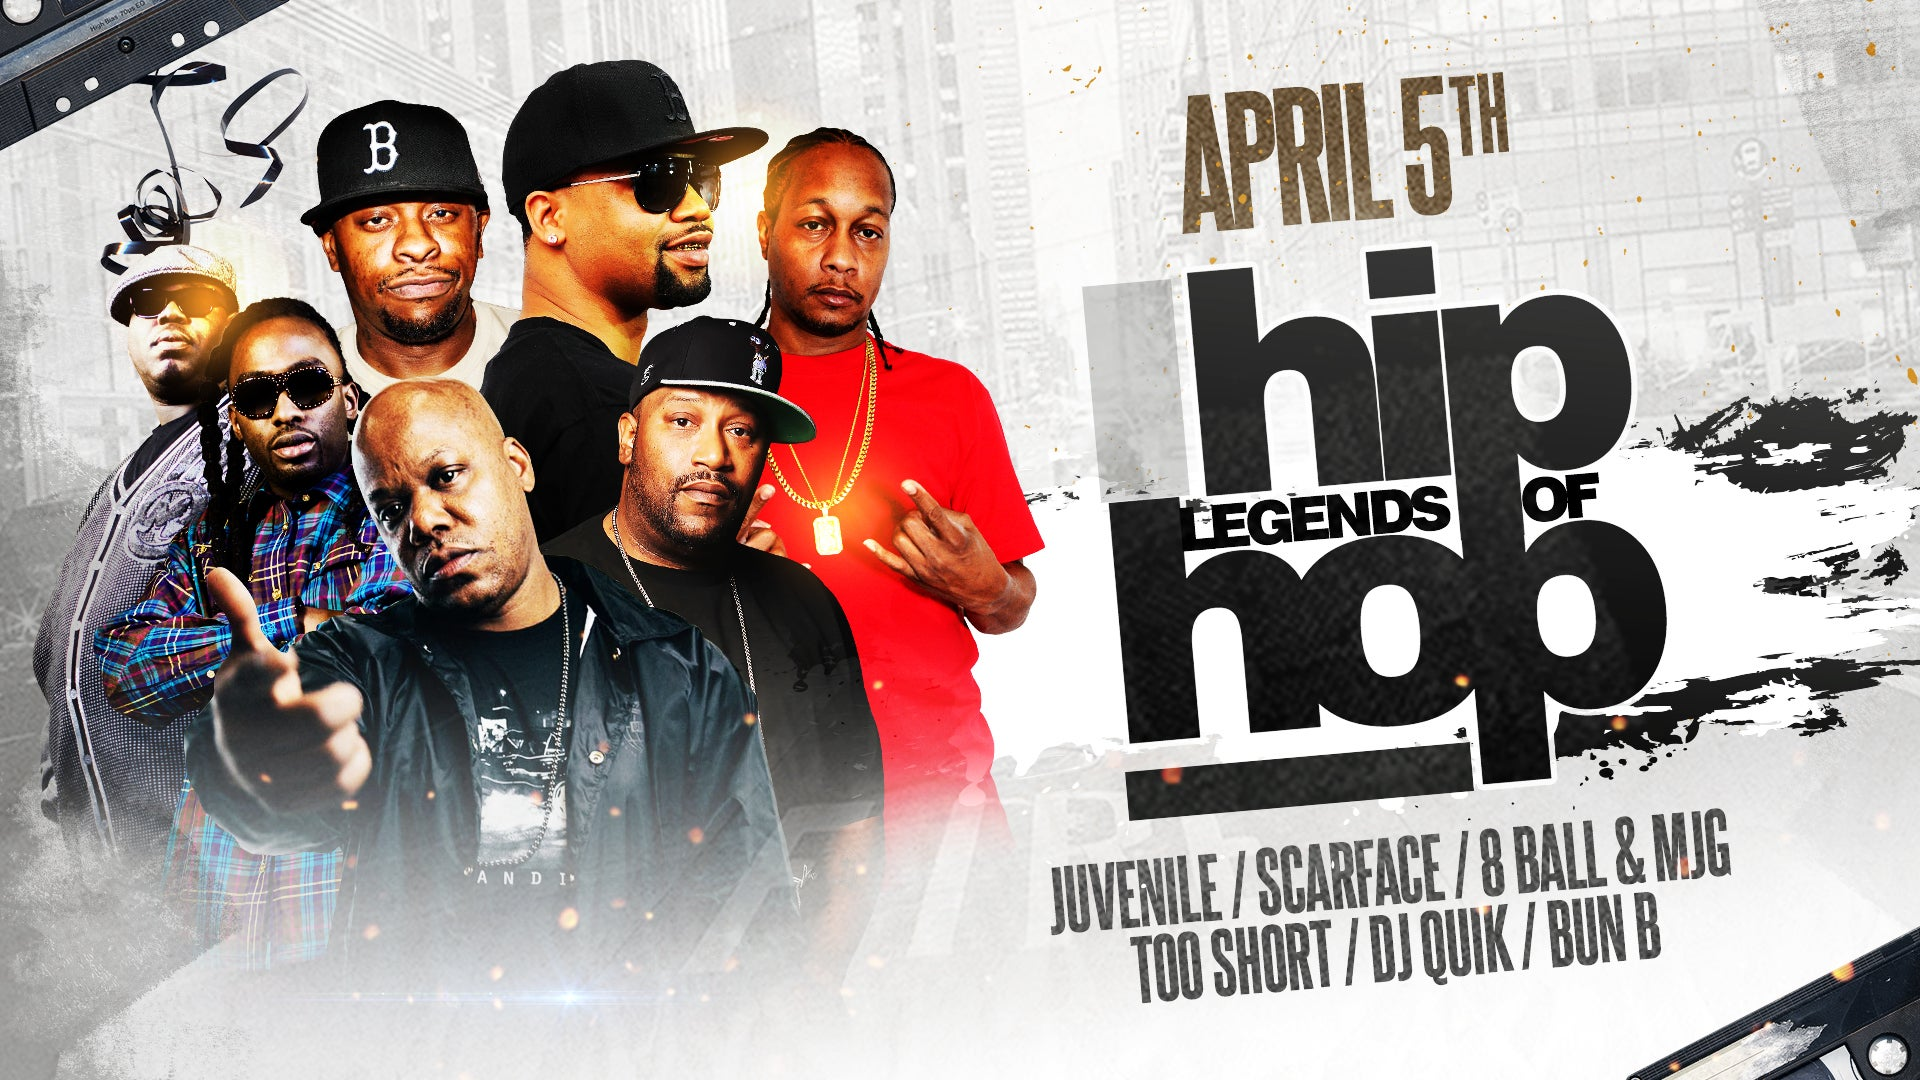 Legends of Hip Hop featuring Juvenile, Scarface, Too Short